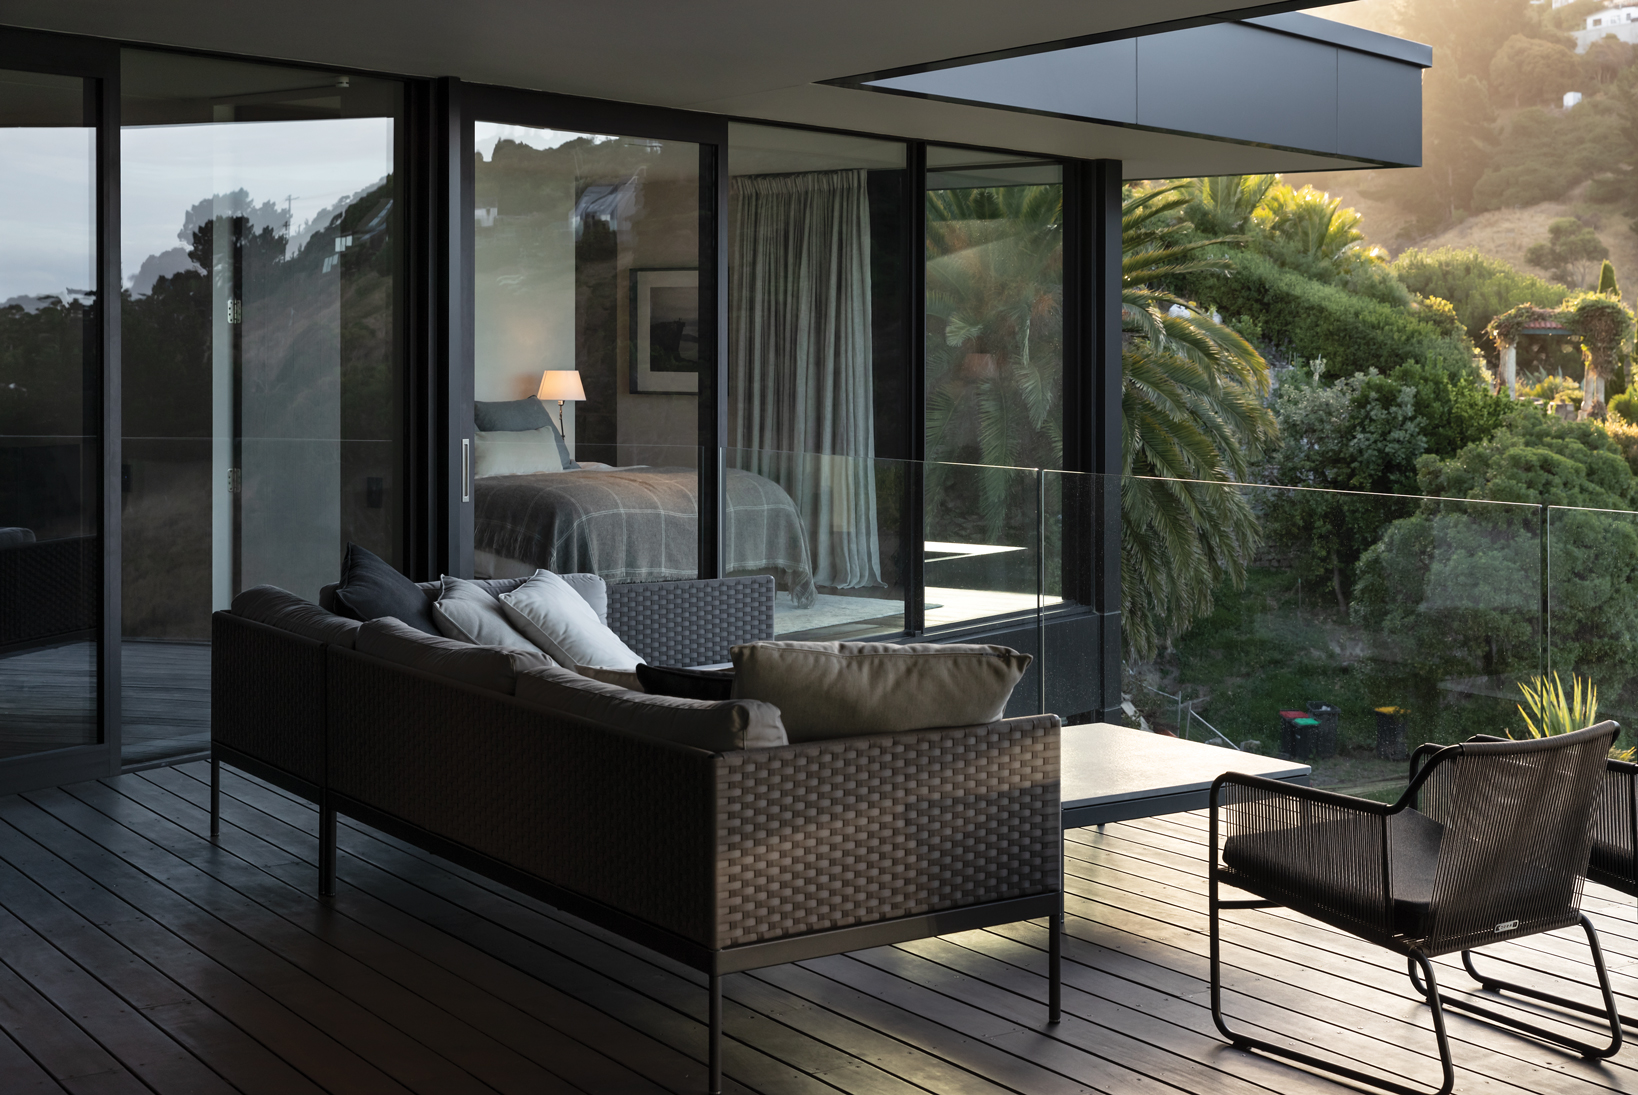 Outdoor Living:  A glass balustrade on the sheltered decking provides for uninterrupted views from Sumner Beach to as far as the Kaikōura Ranges.